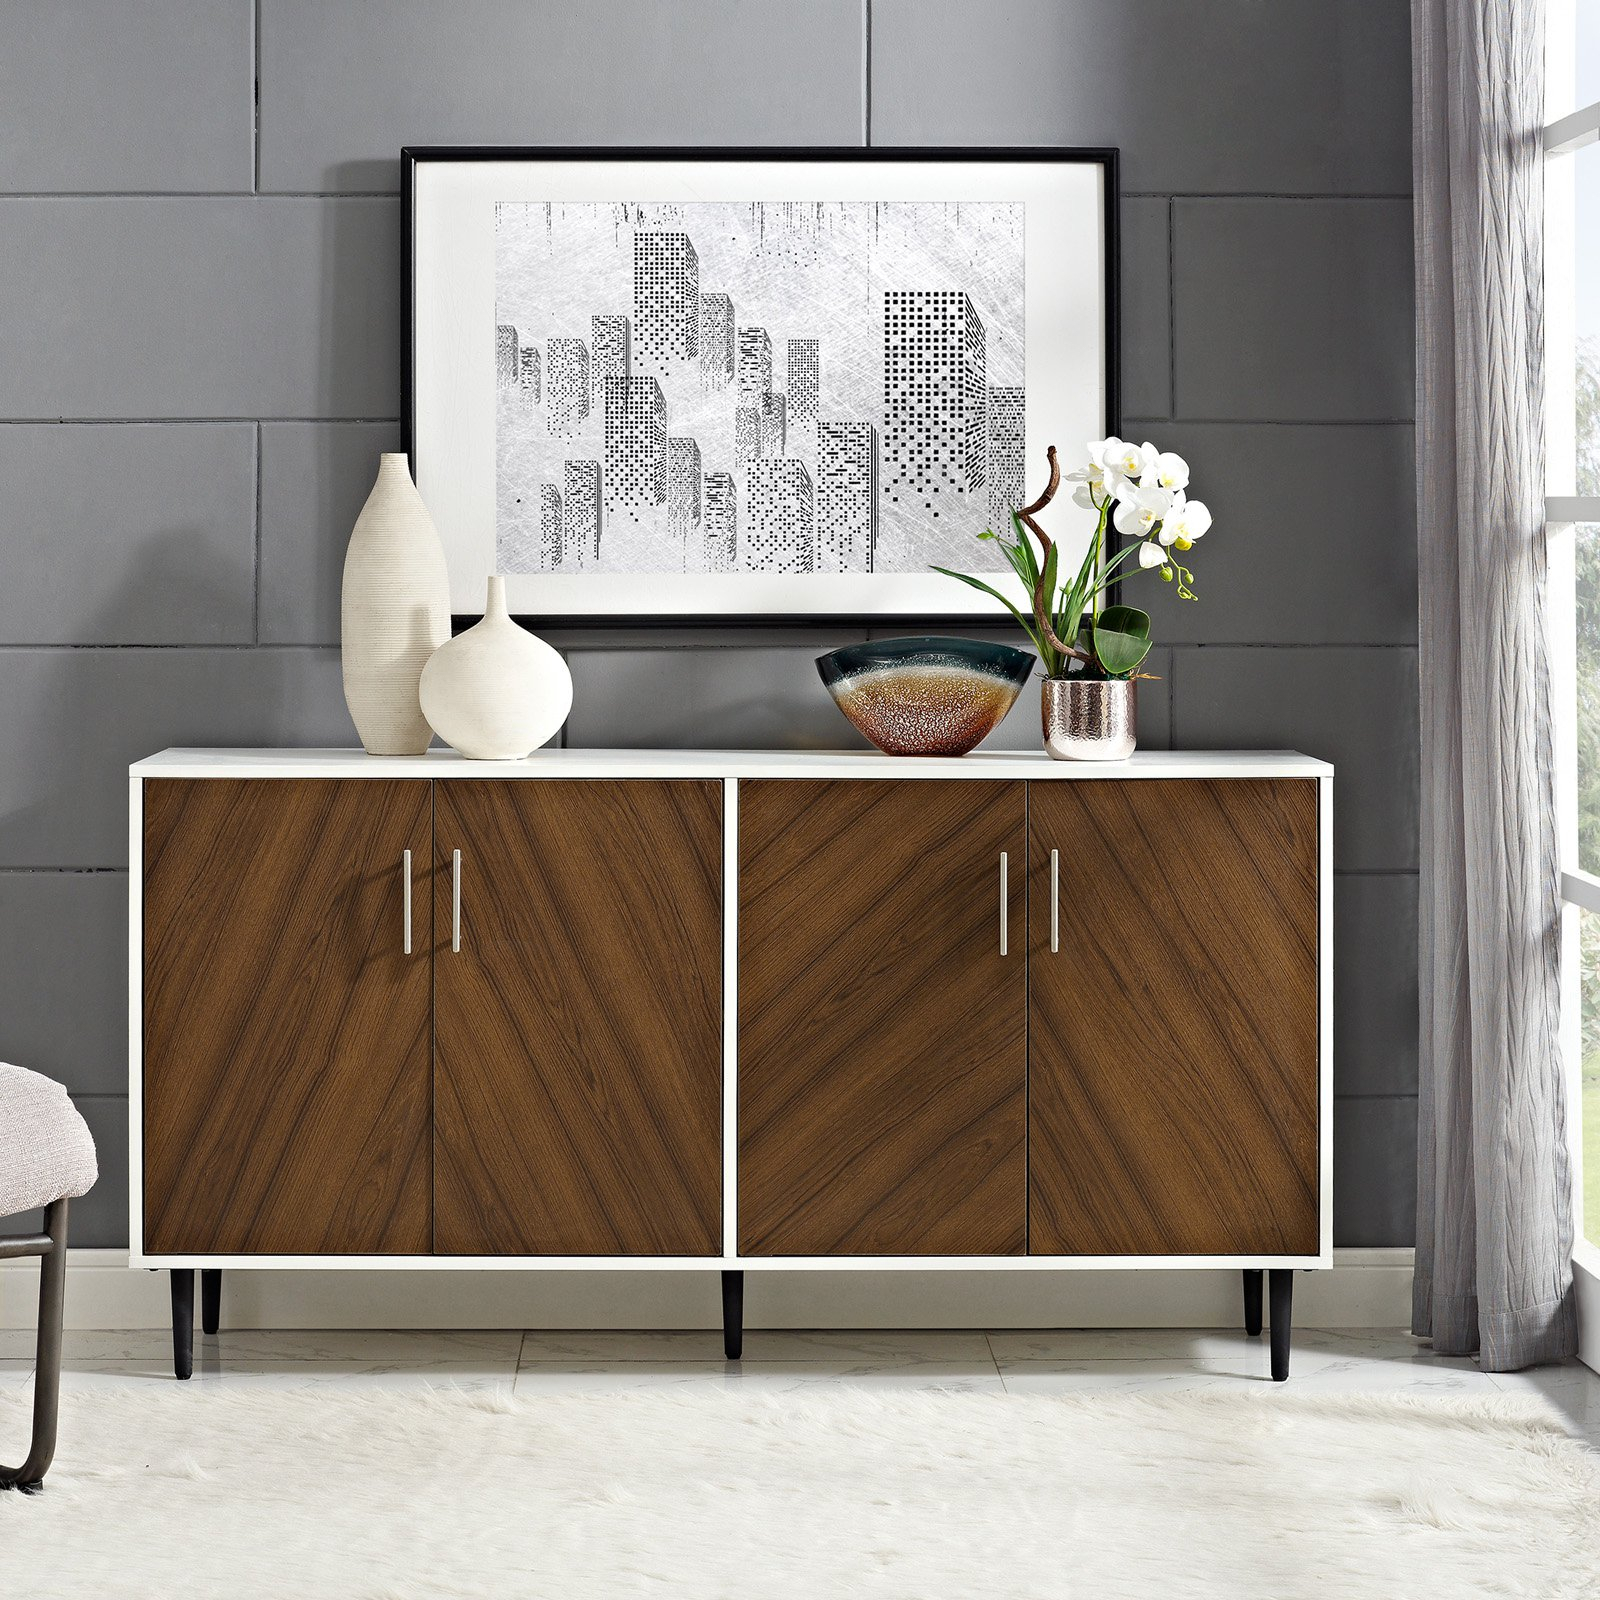 Inspiration about Manor Park 58 In. Modern Bookmatch Buffet | Decor In 2019 Inside 2018 Keiko Modern Bookmatch Sideboards (#4 of 20)